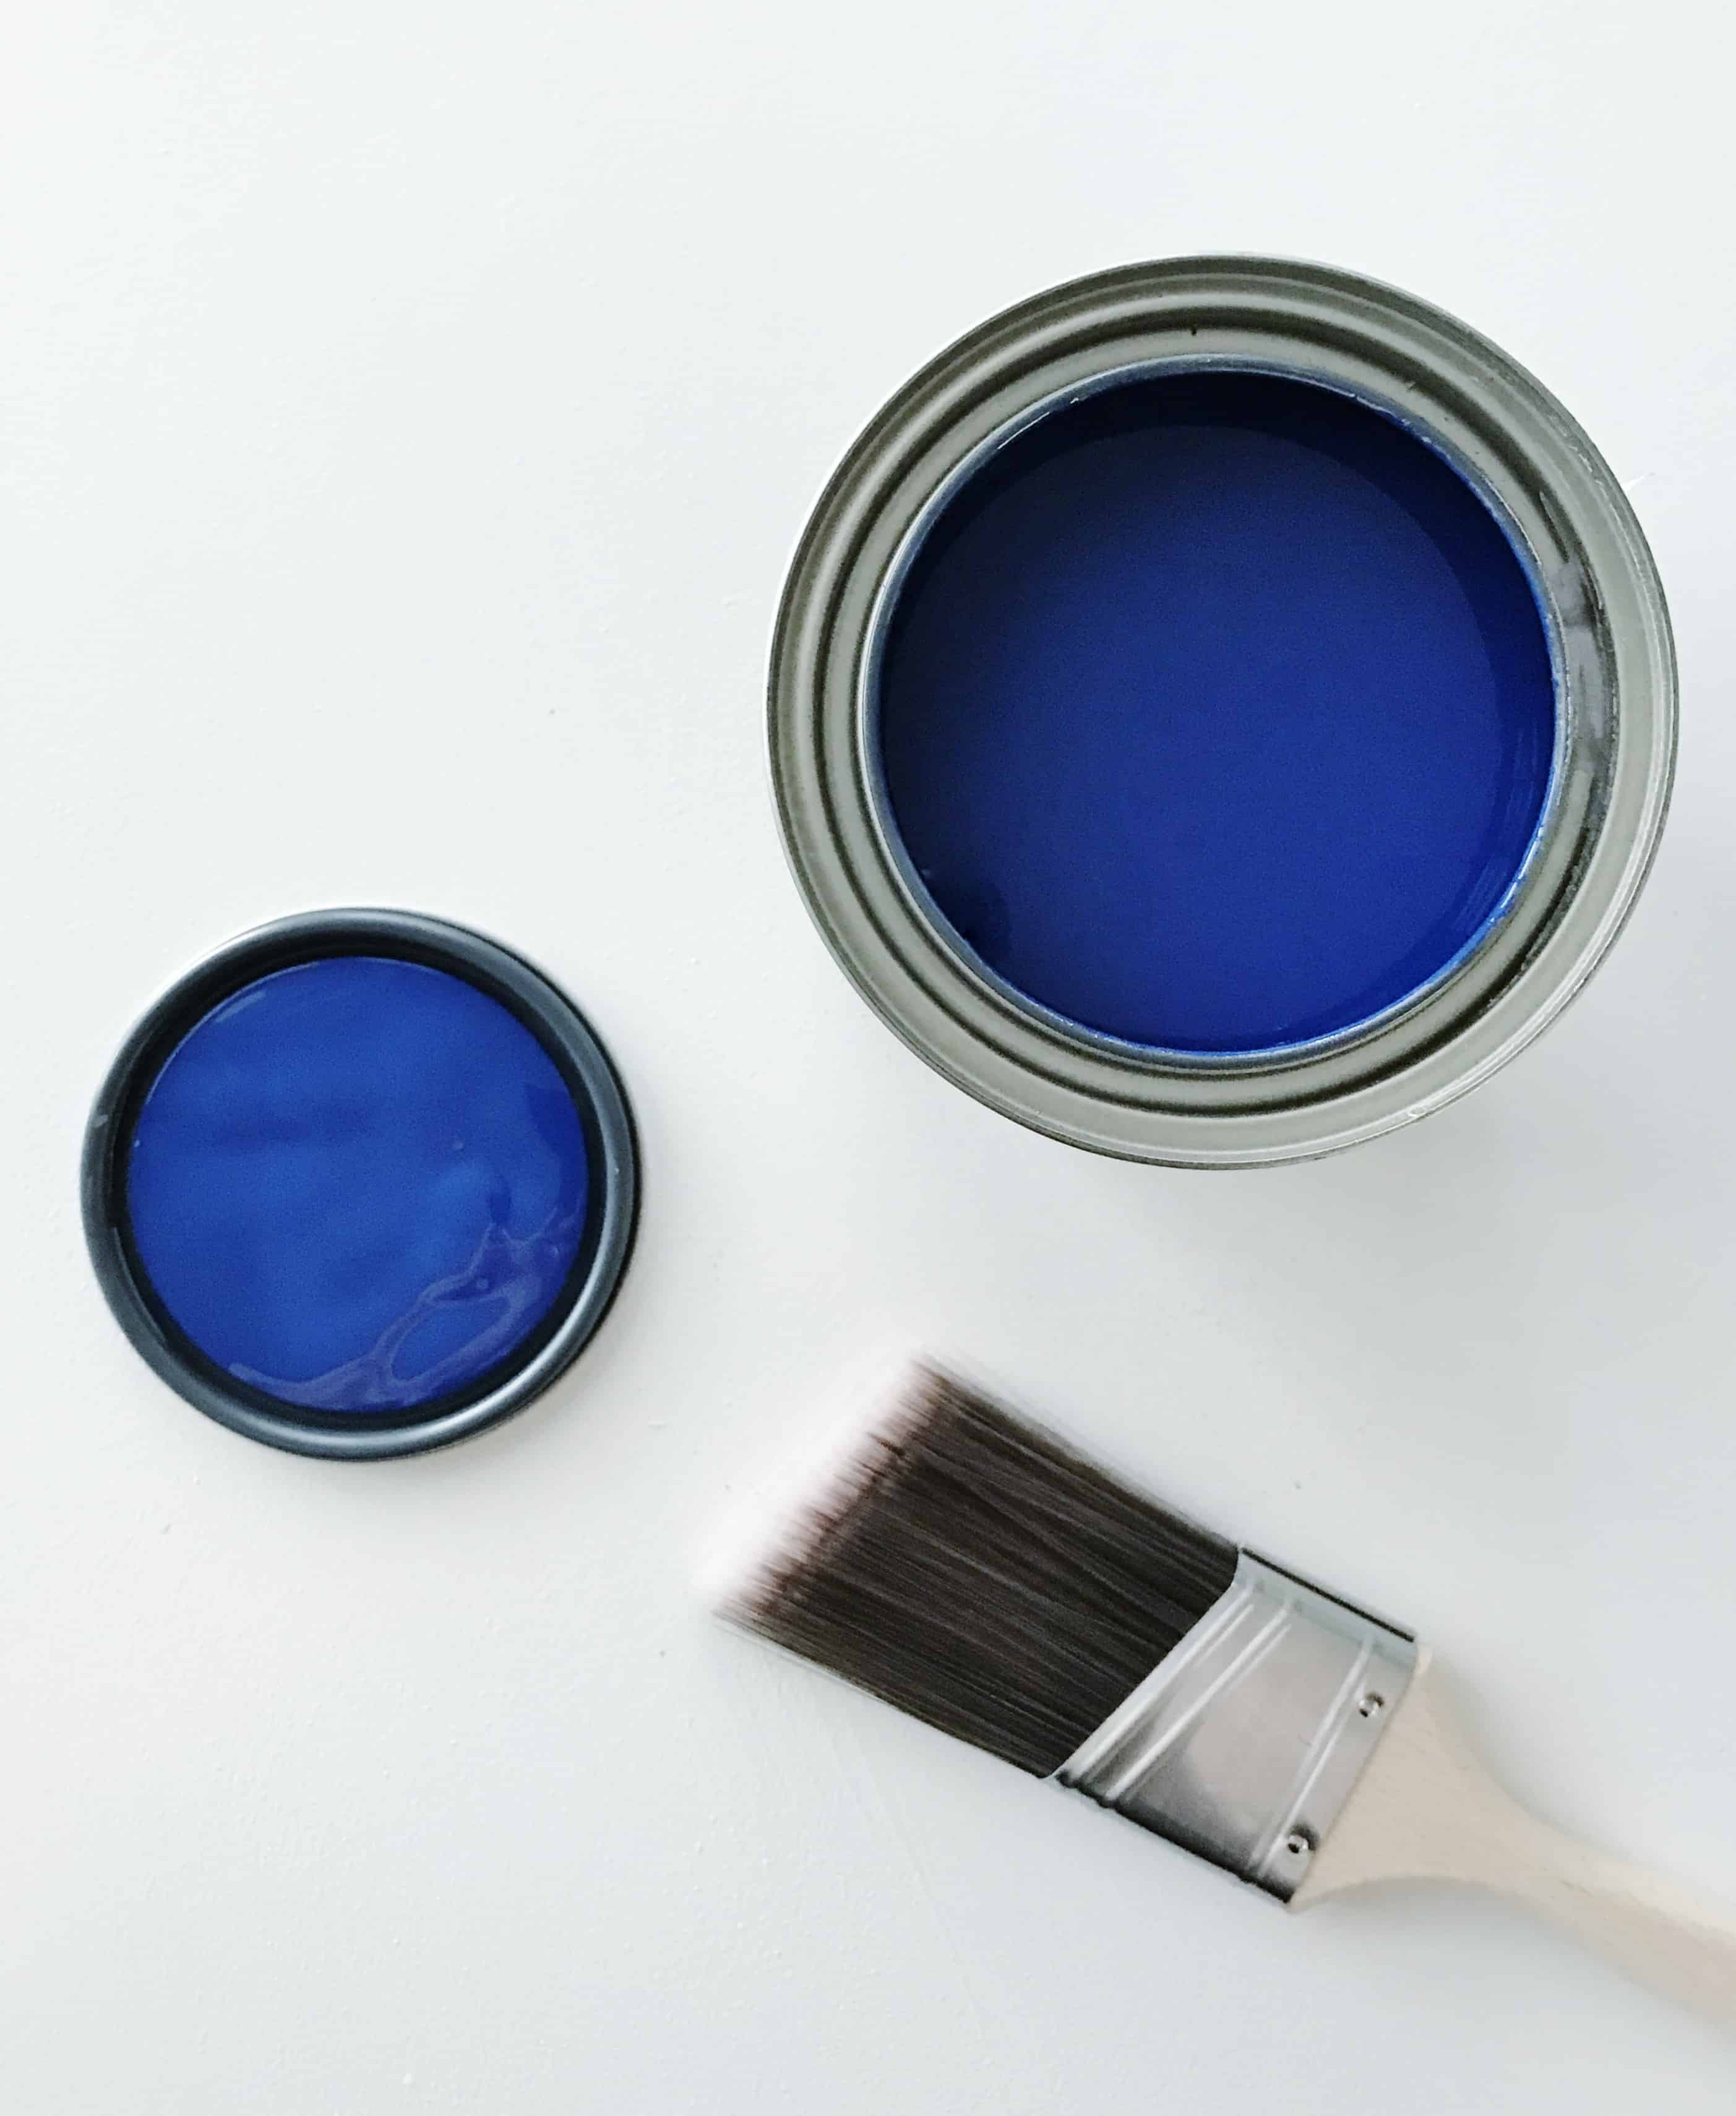 A beautiful, rich blue with hints of purple. This color is Sherwin-Williams Indigo SW 6531